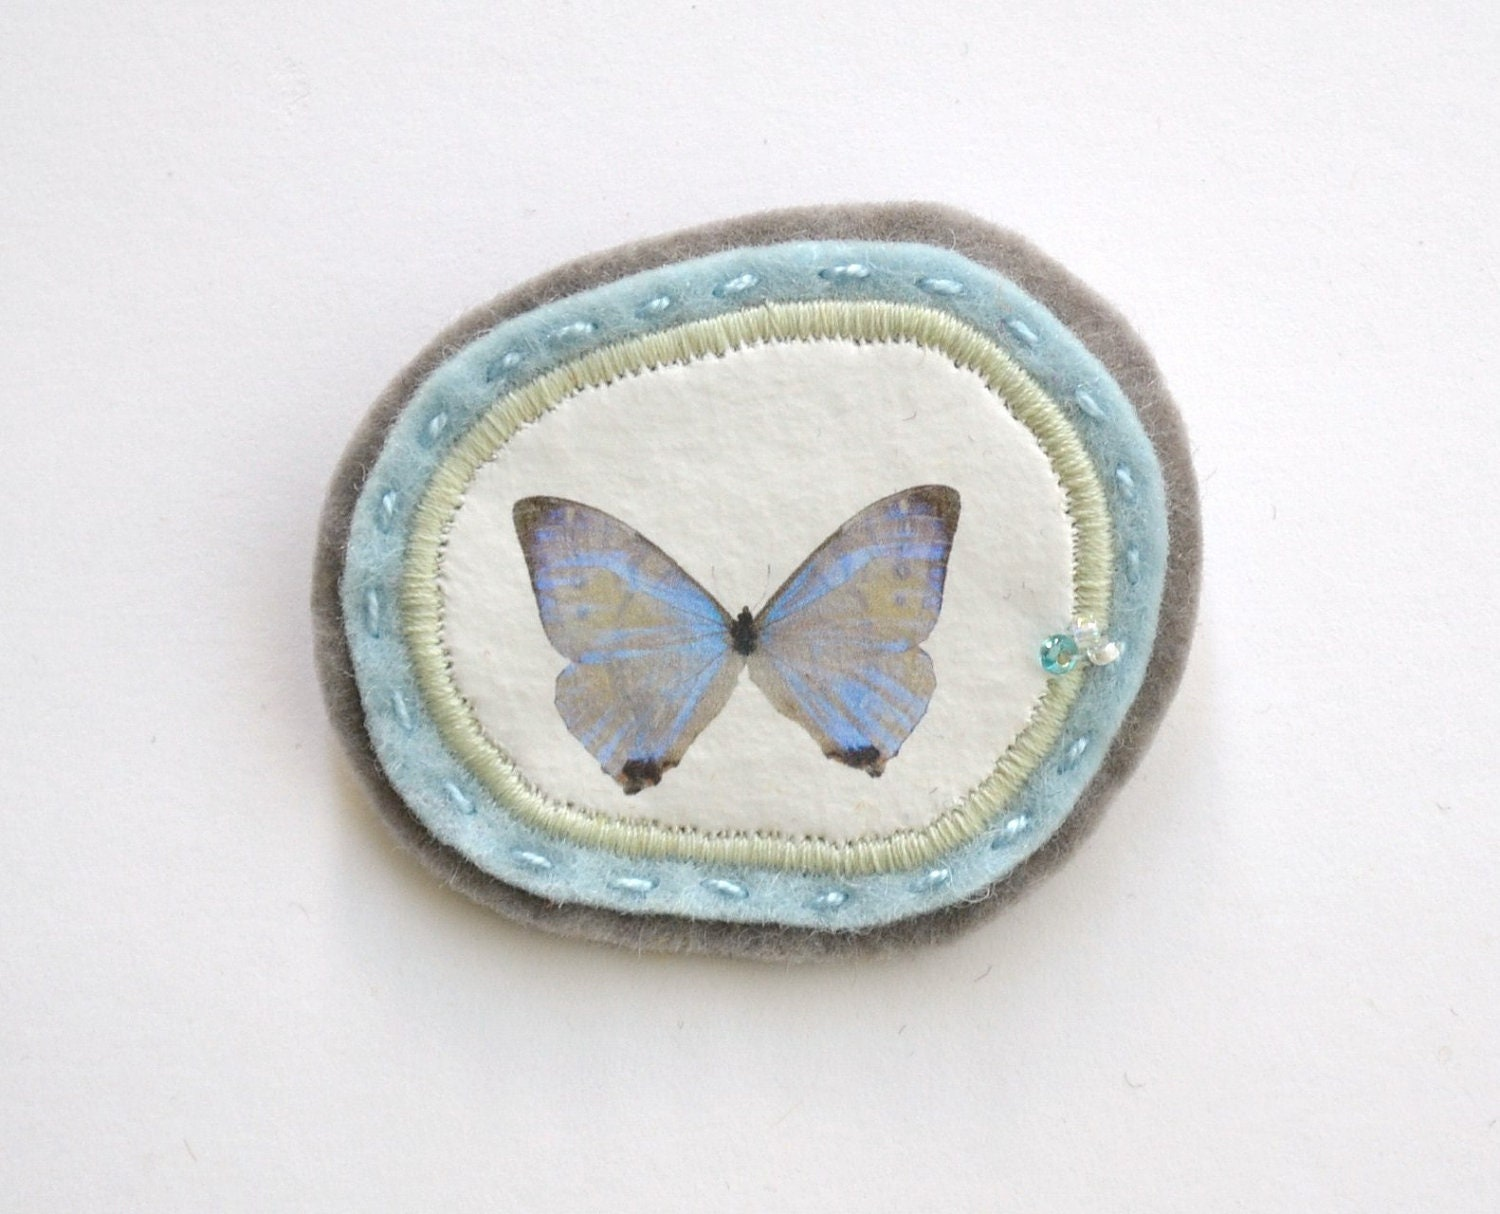 light blue butterfly brooch -minimal - light blue and grey - pin broach - winter garden - redstitchlab